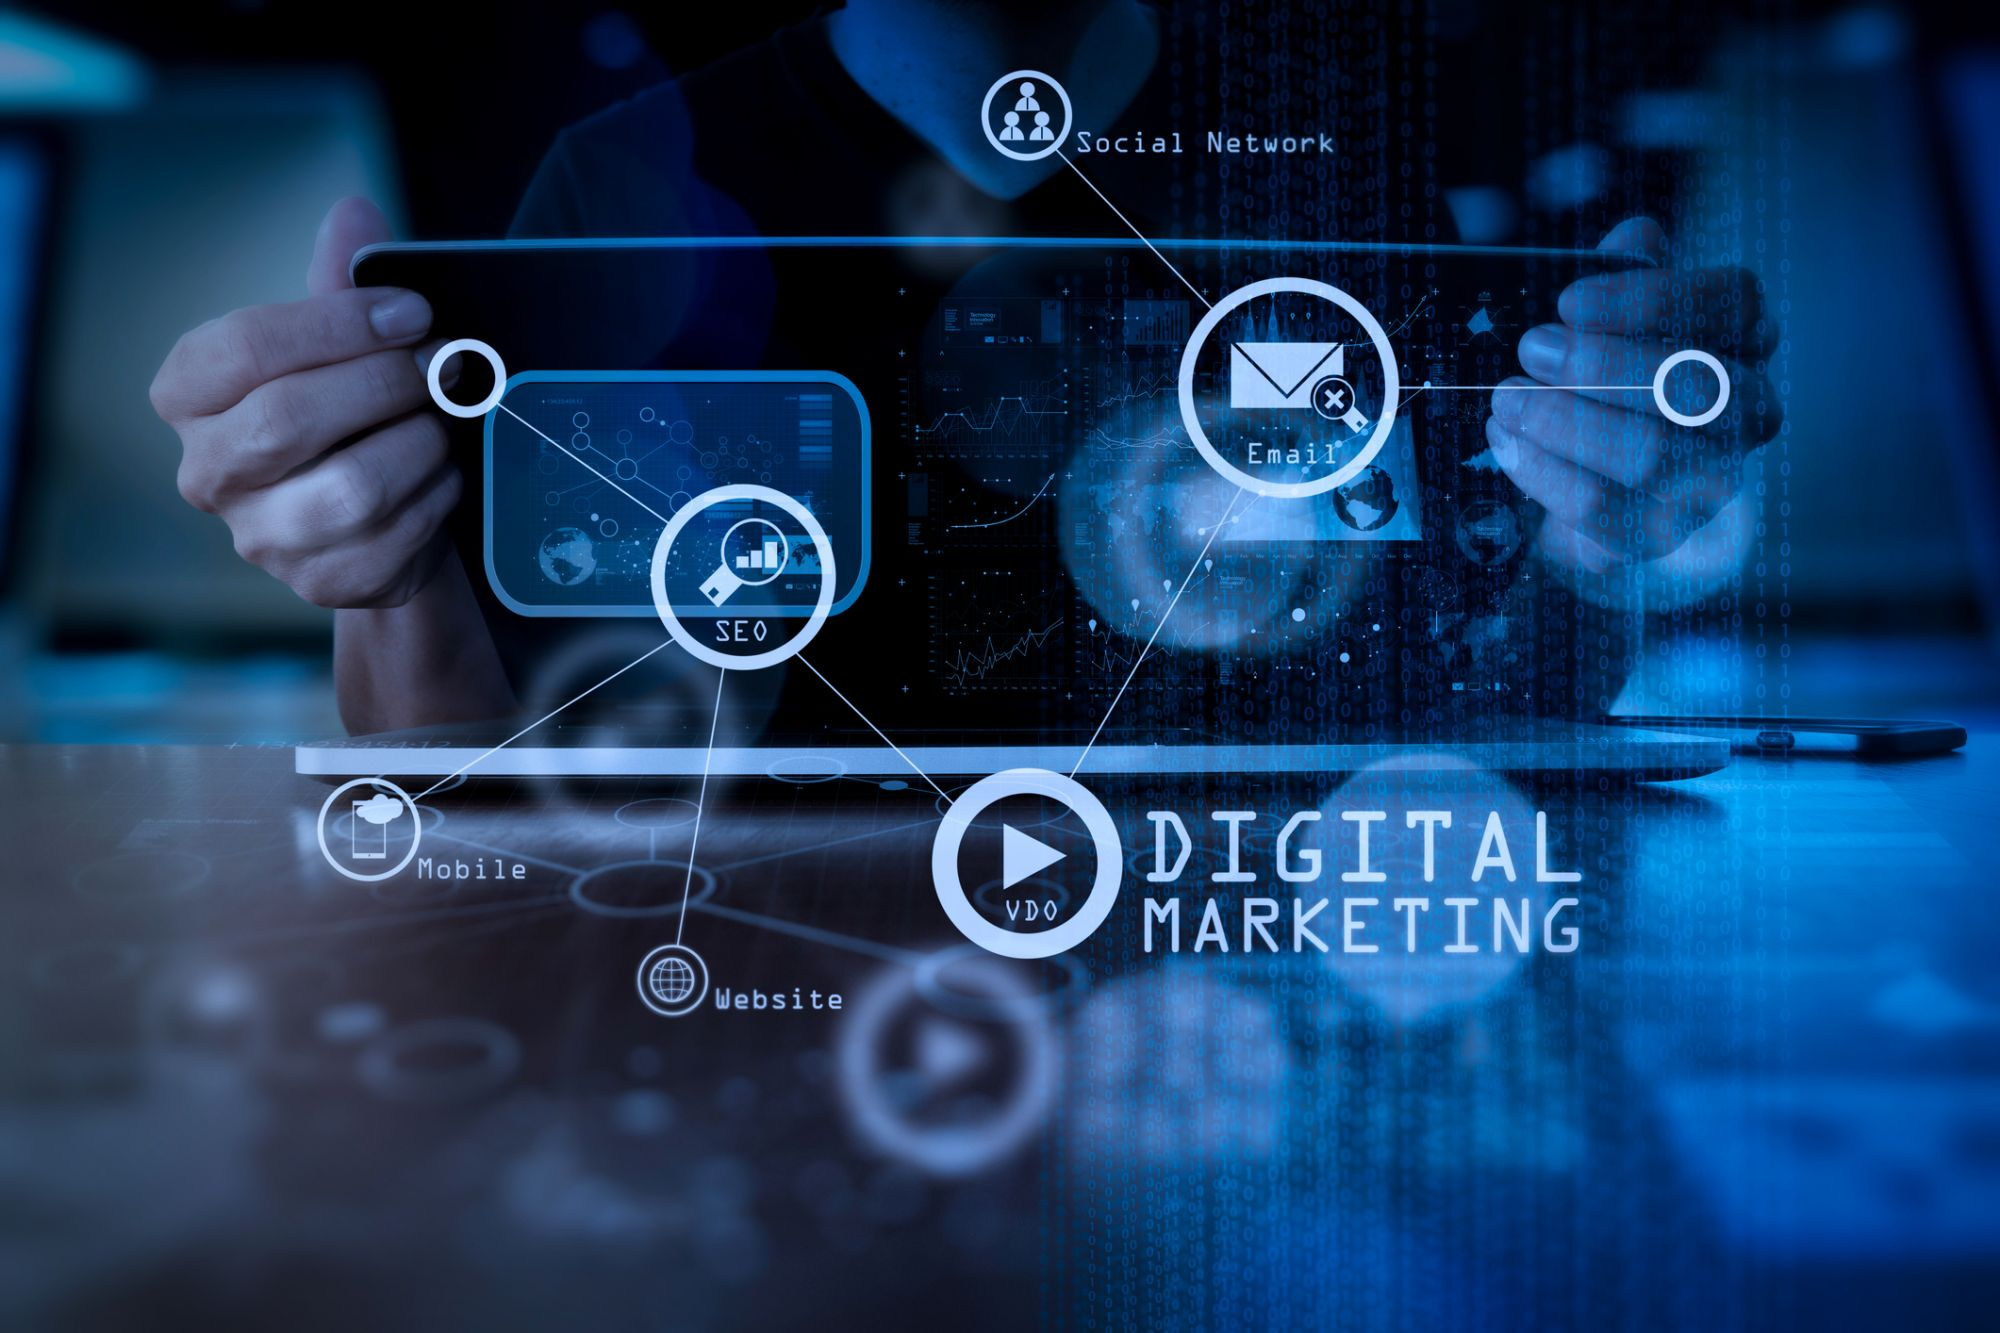 Why digital marketing is important in 2020 ? Grow your business.